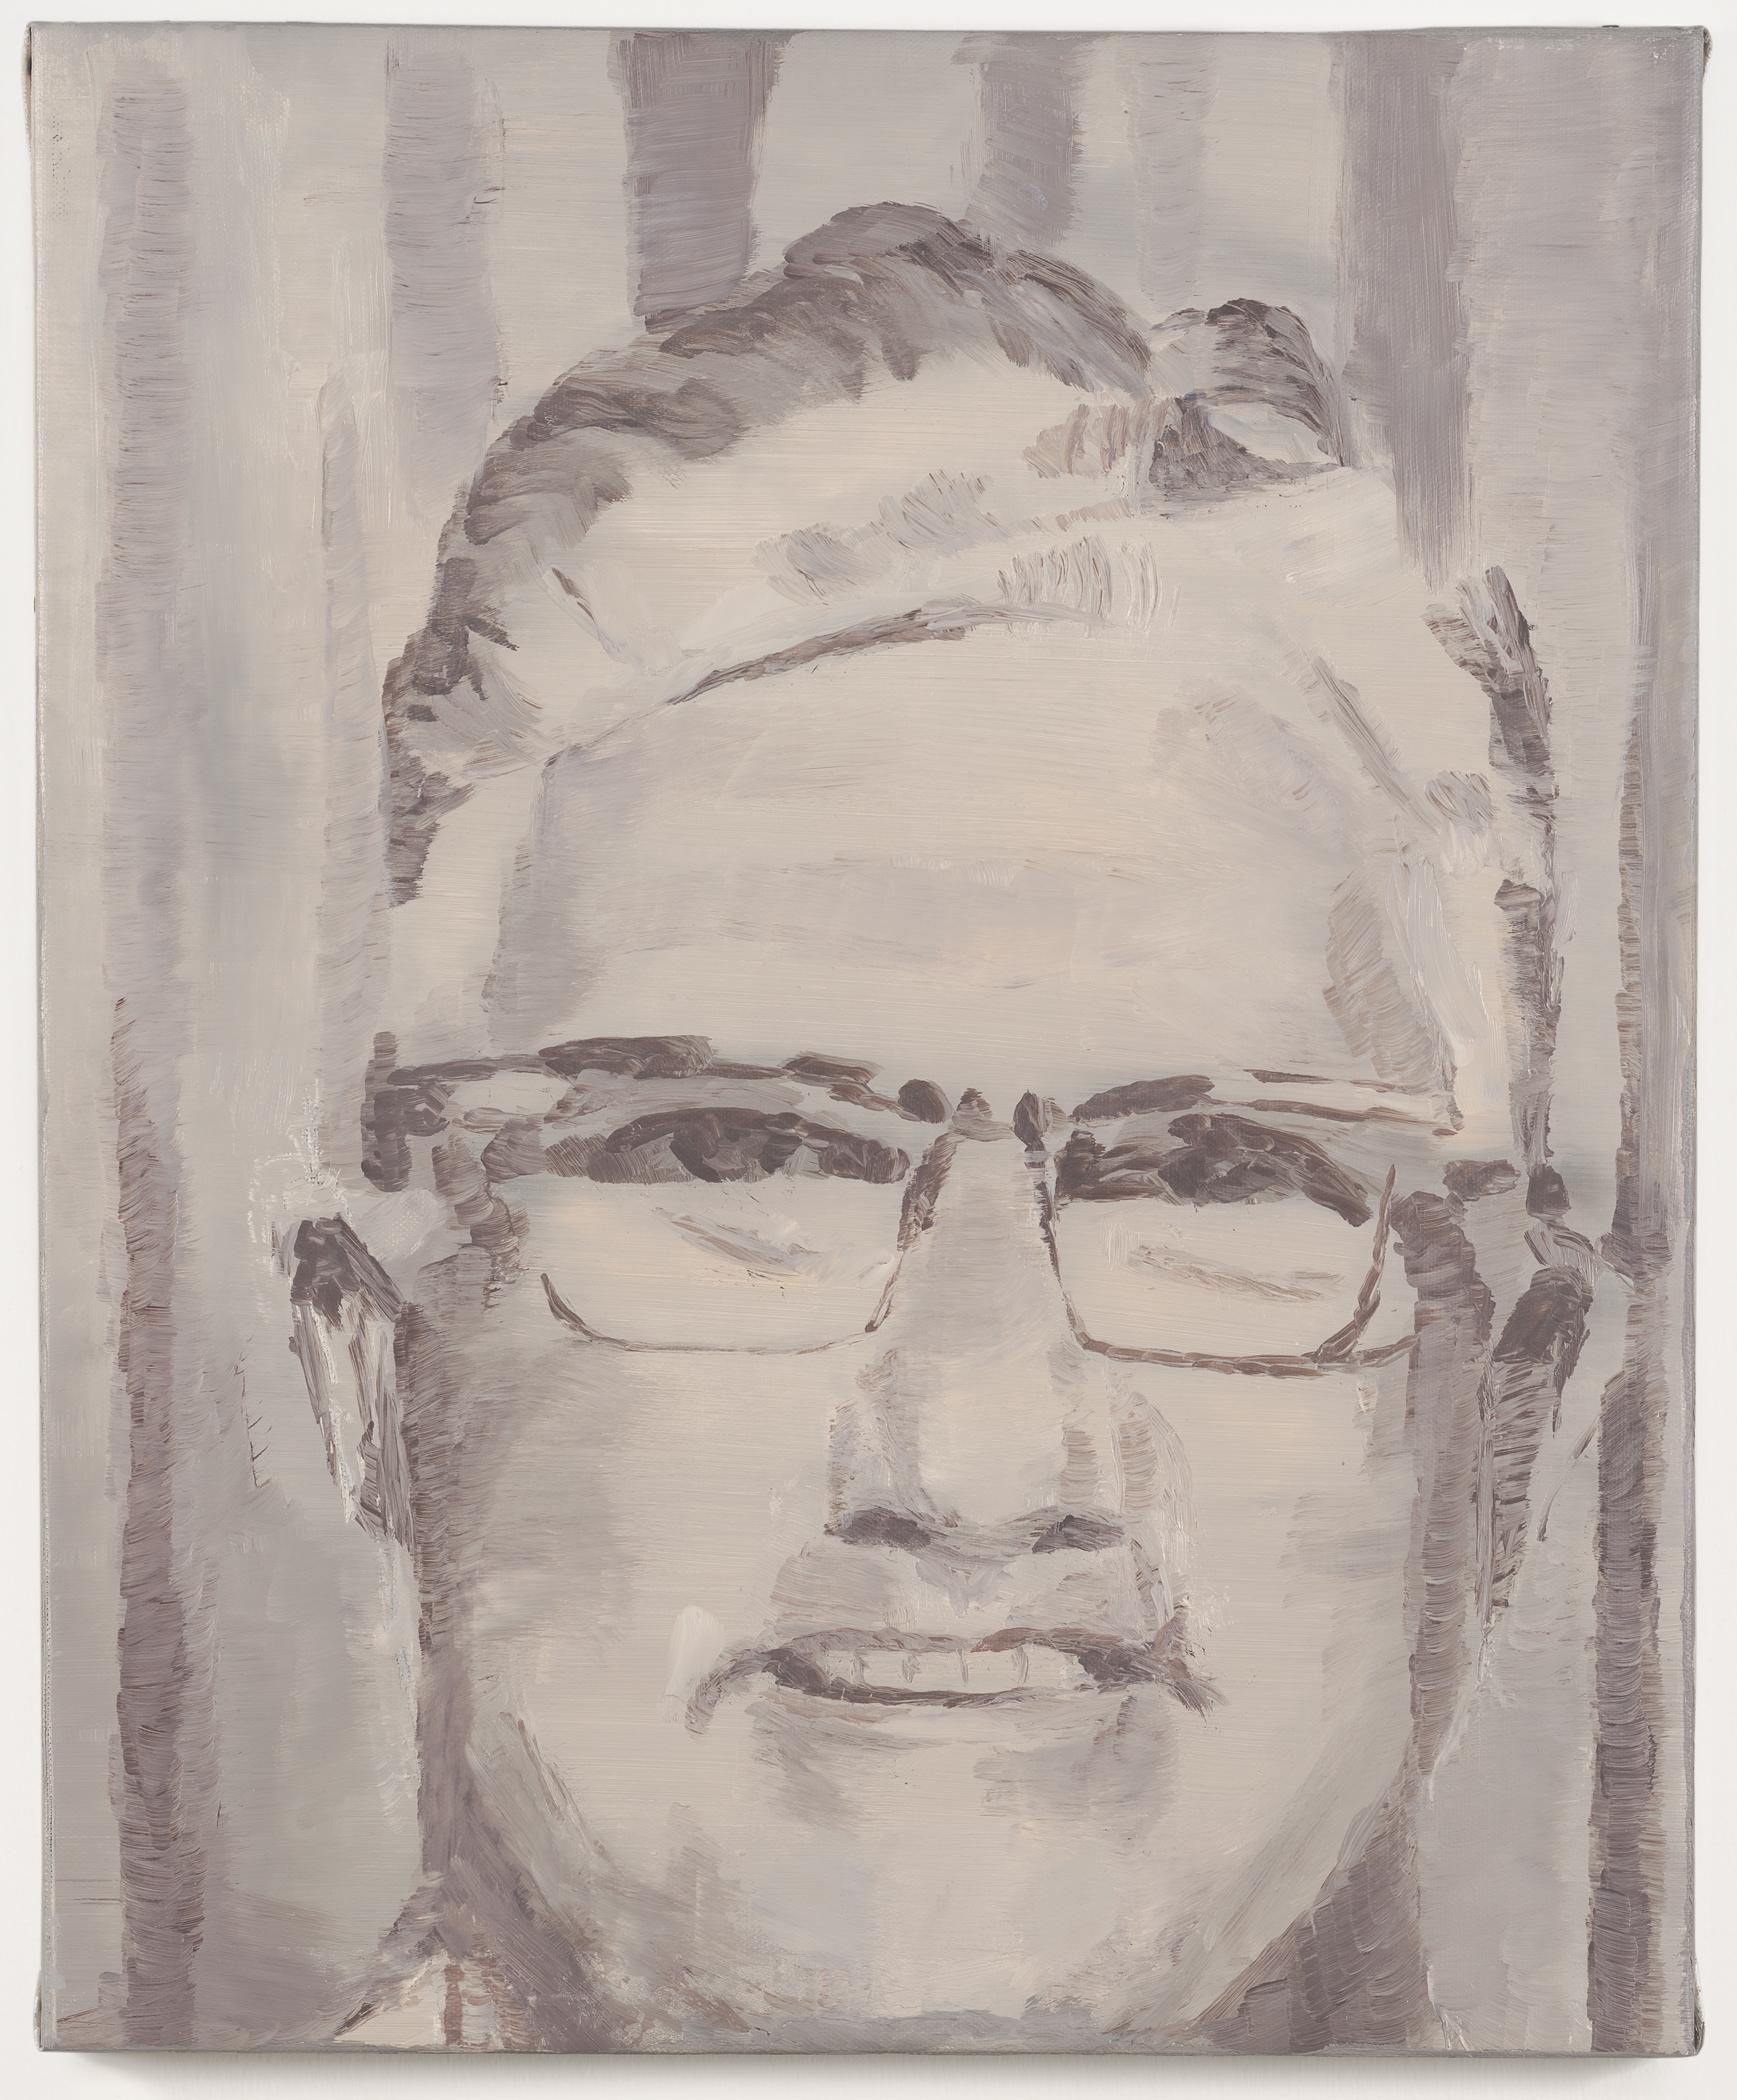 A greyscale portrait painting shows a light-skinned person with short hair and glasses.